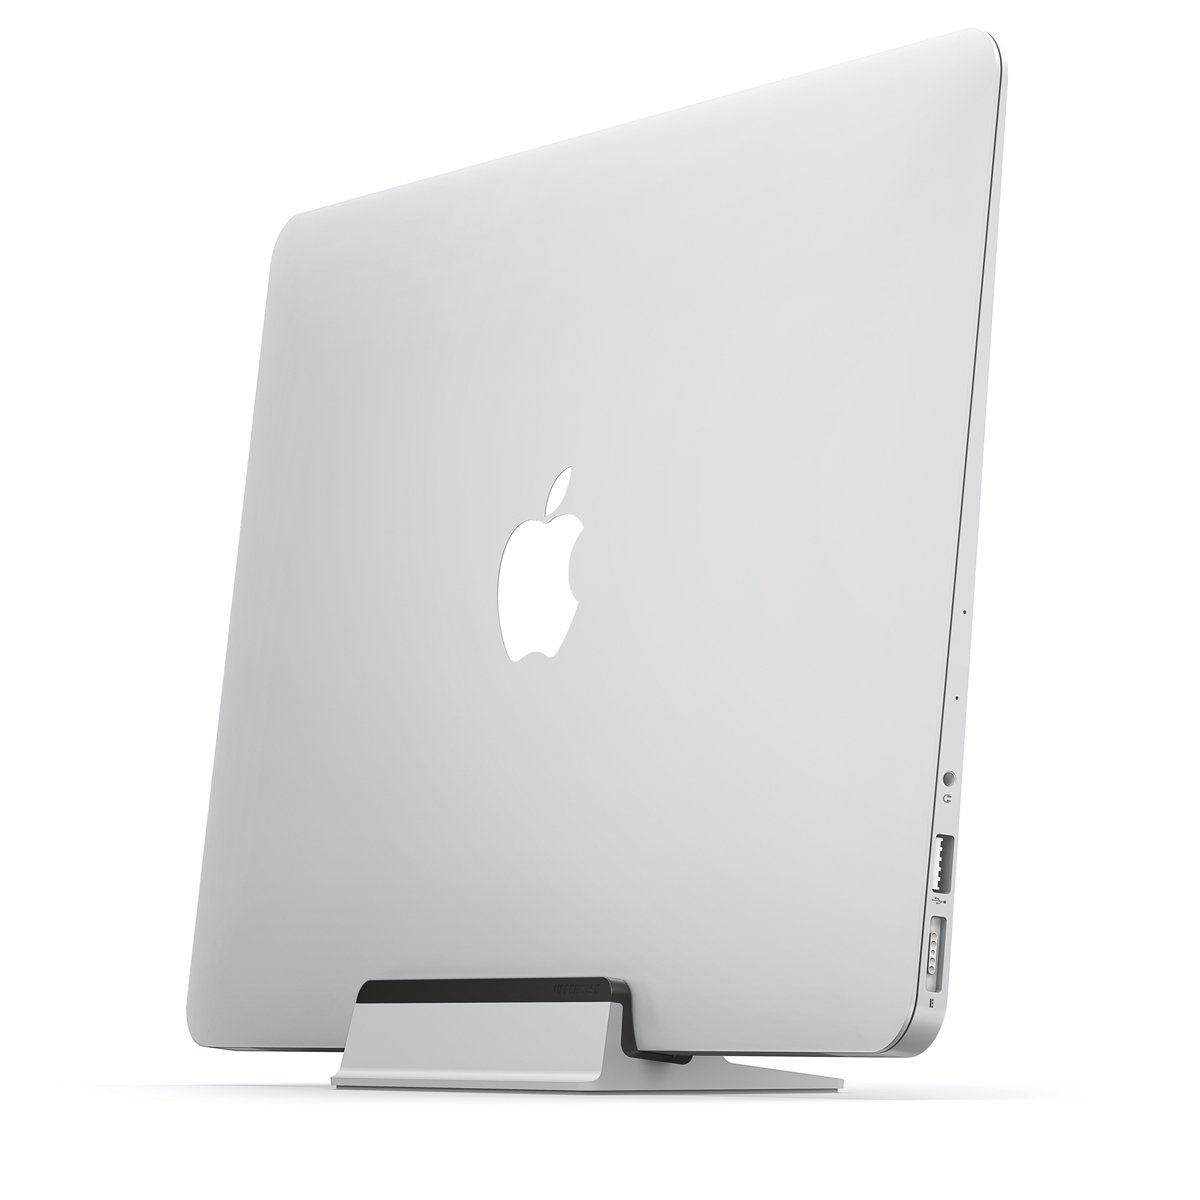 UPPERCASE KRADL Air with Contrast Black Small Profile Aluminum Vertical Stand for MacBook Air